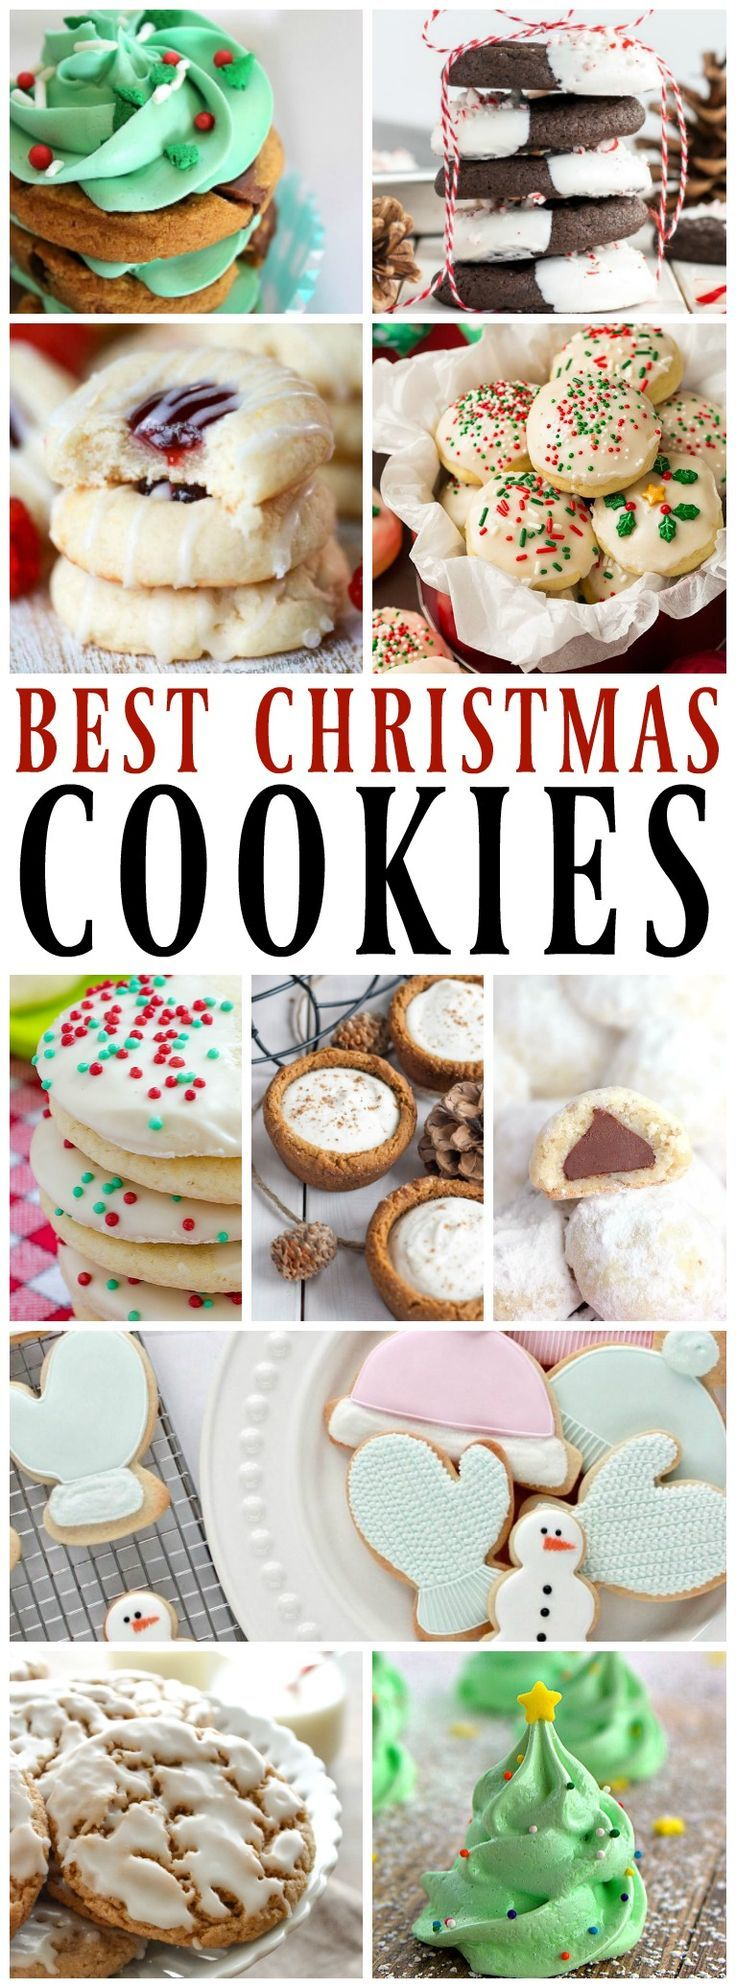 50 BEST CHRISTMAS COOKIES that will spread holiday cheer. From the classic sugar to the best German Chocolate Cake Cookies and everything in between. Friends get ready to bake your heart out.